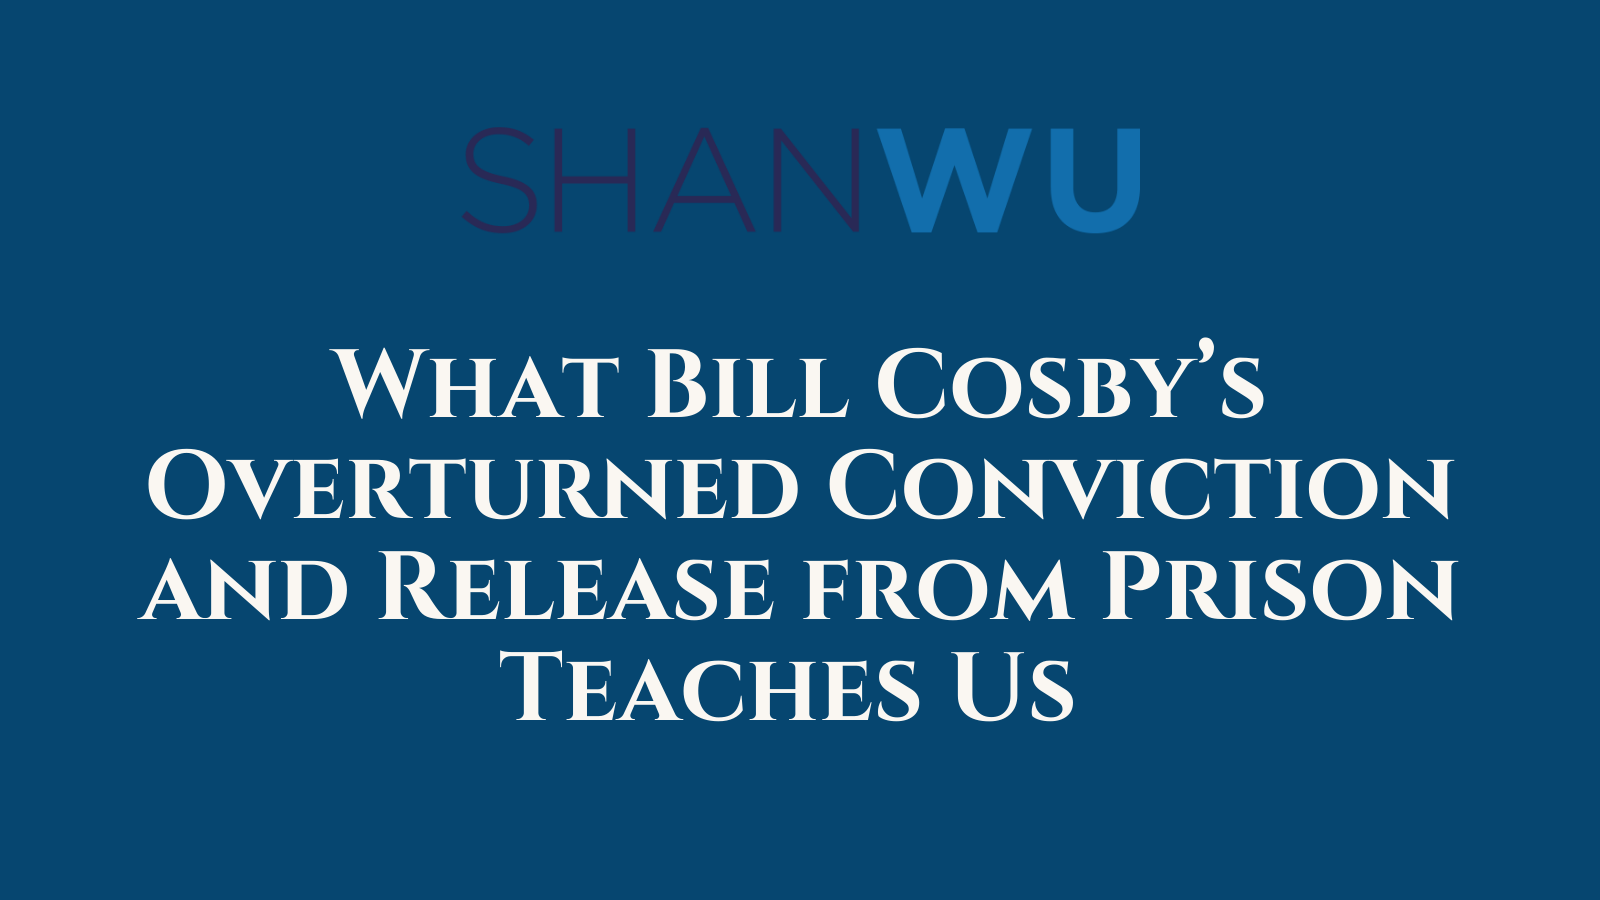 What Bill Cosby's Overturned Conviction and Release from Prison Teaches Us - Shanlon Wu